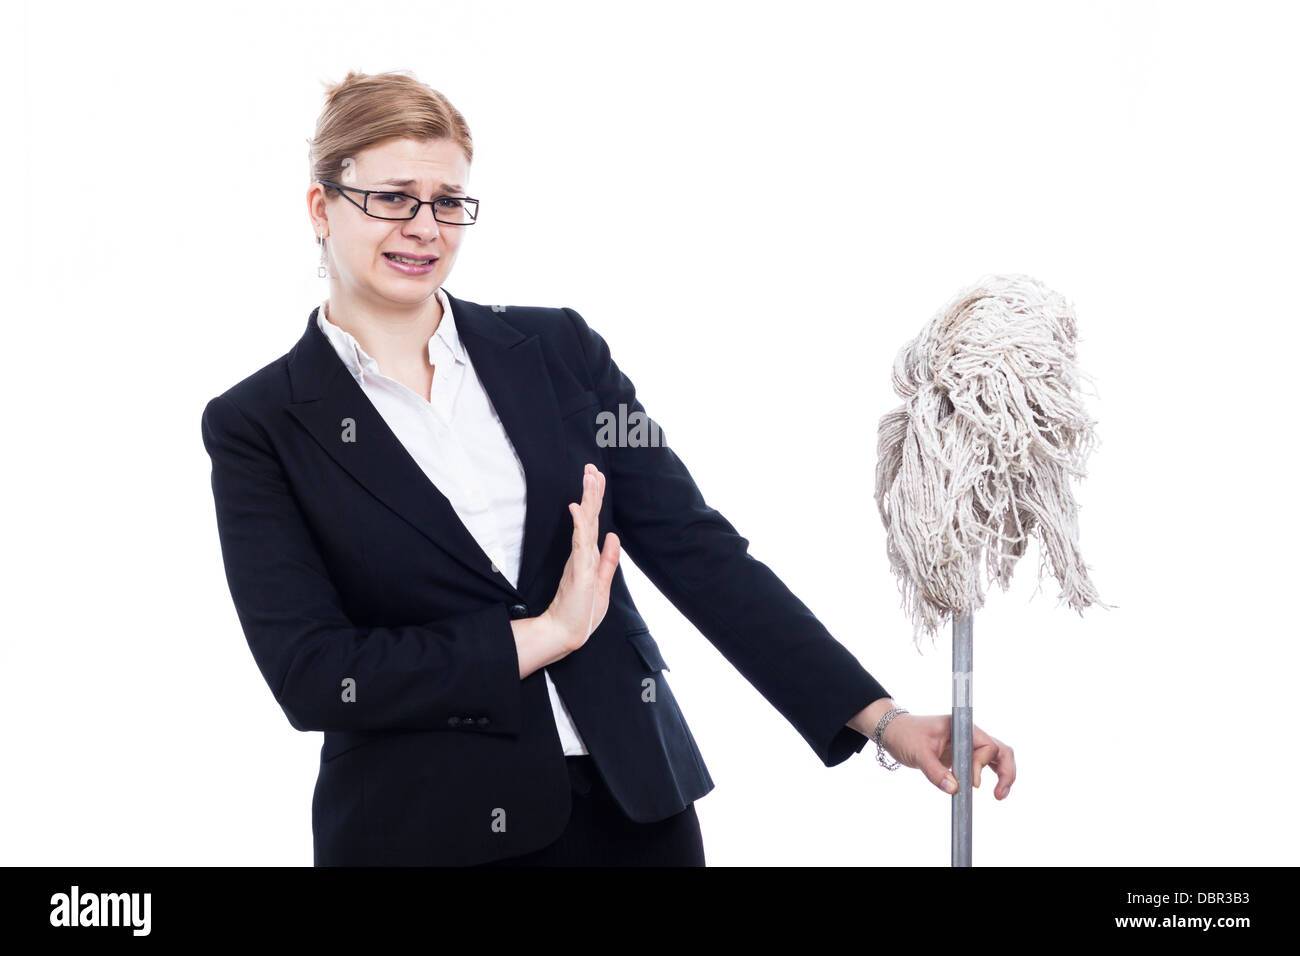 Unhappy businesswoman holding mop, isolated on white background. - Stock Image